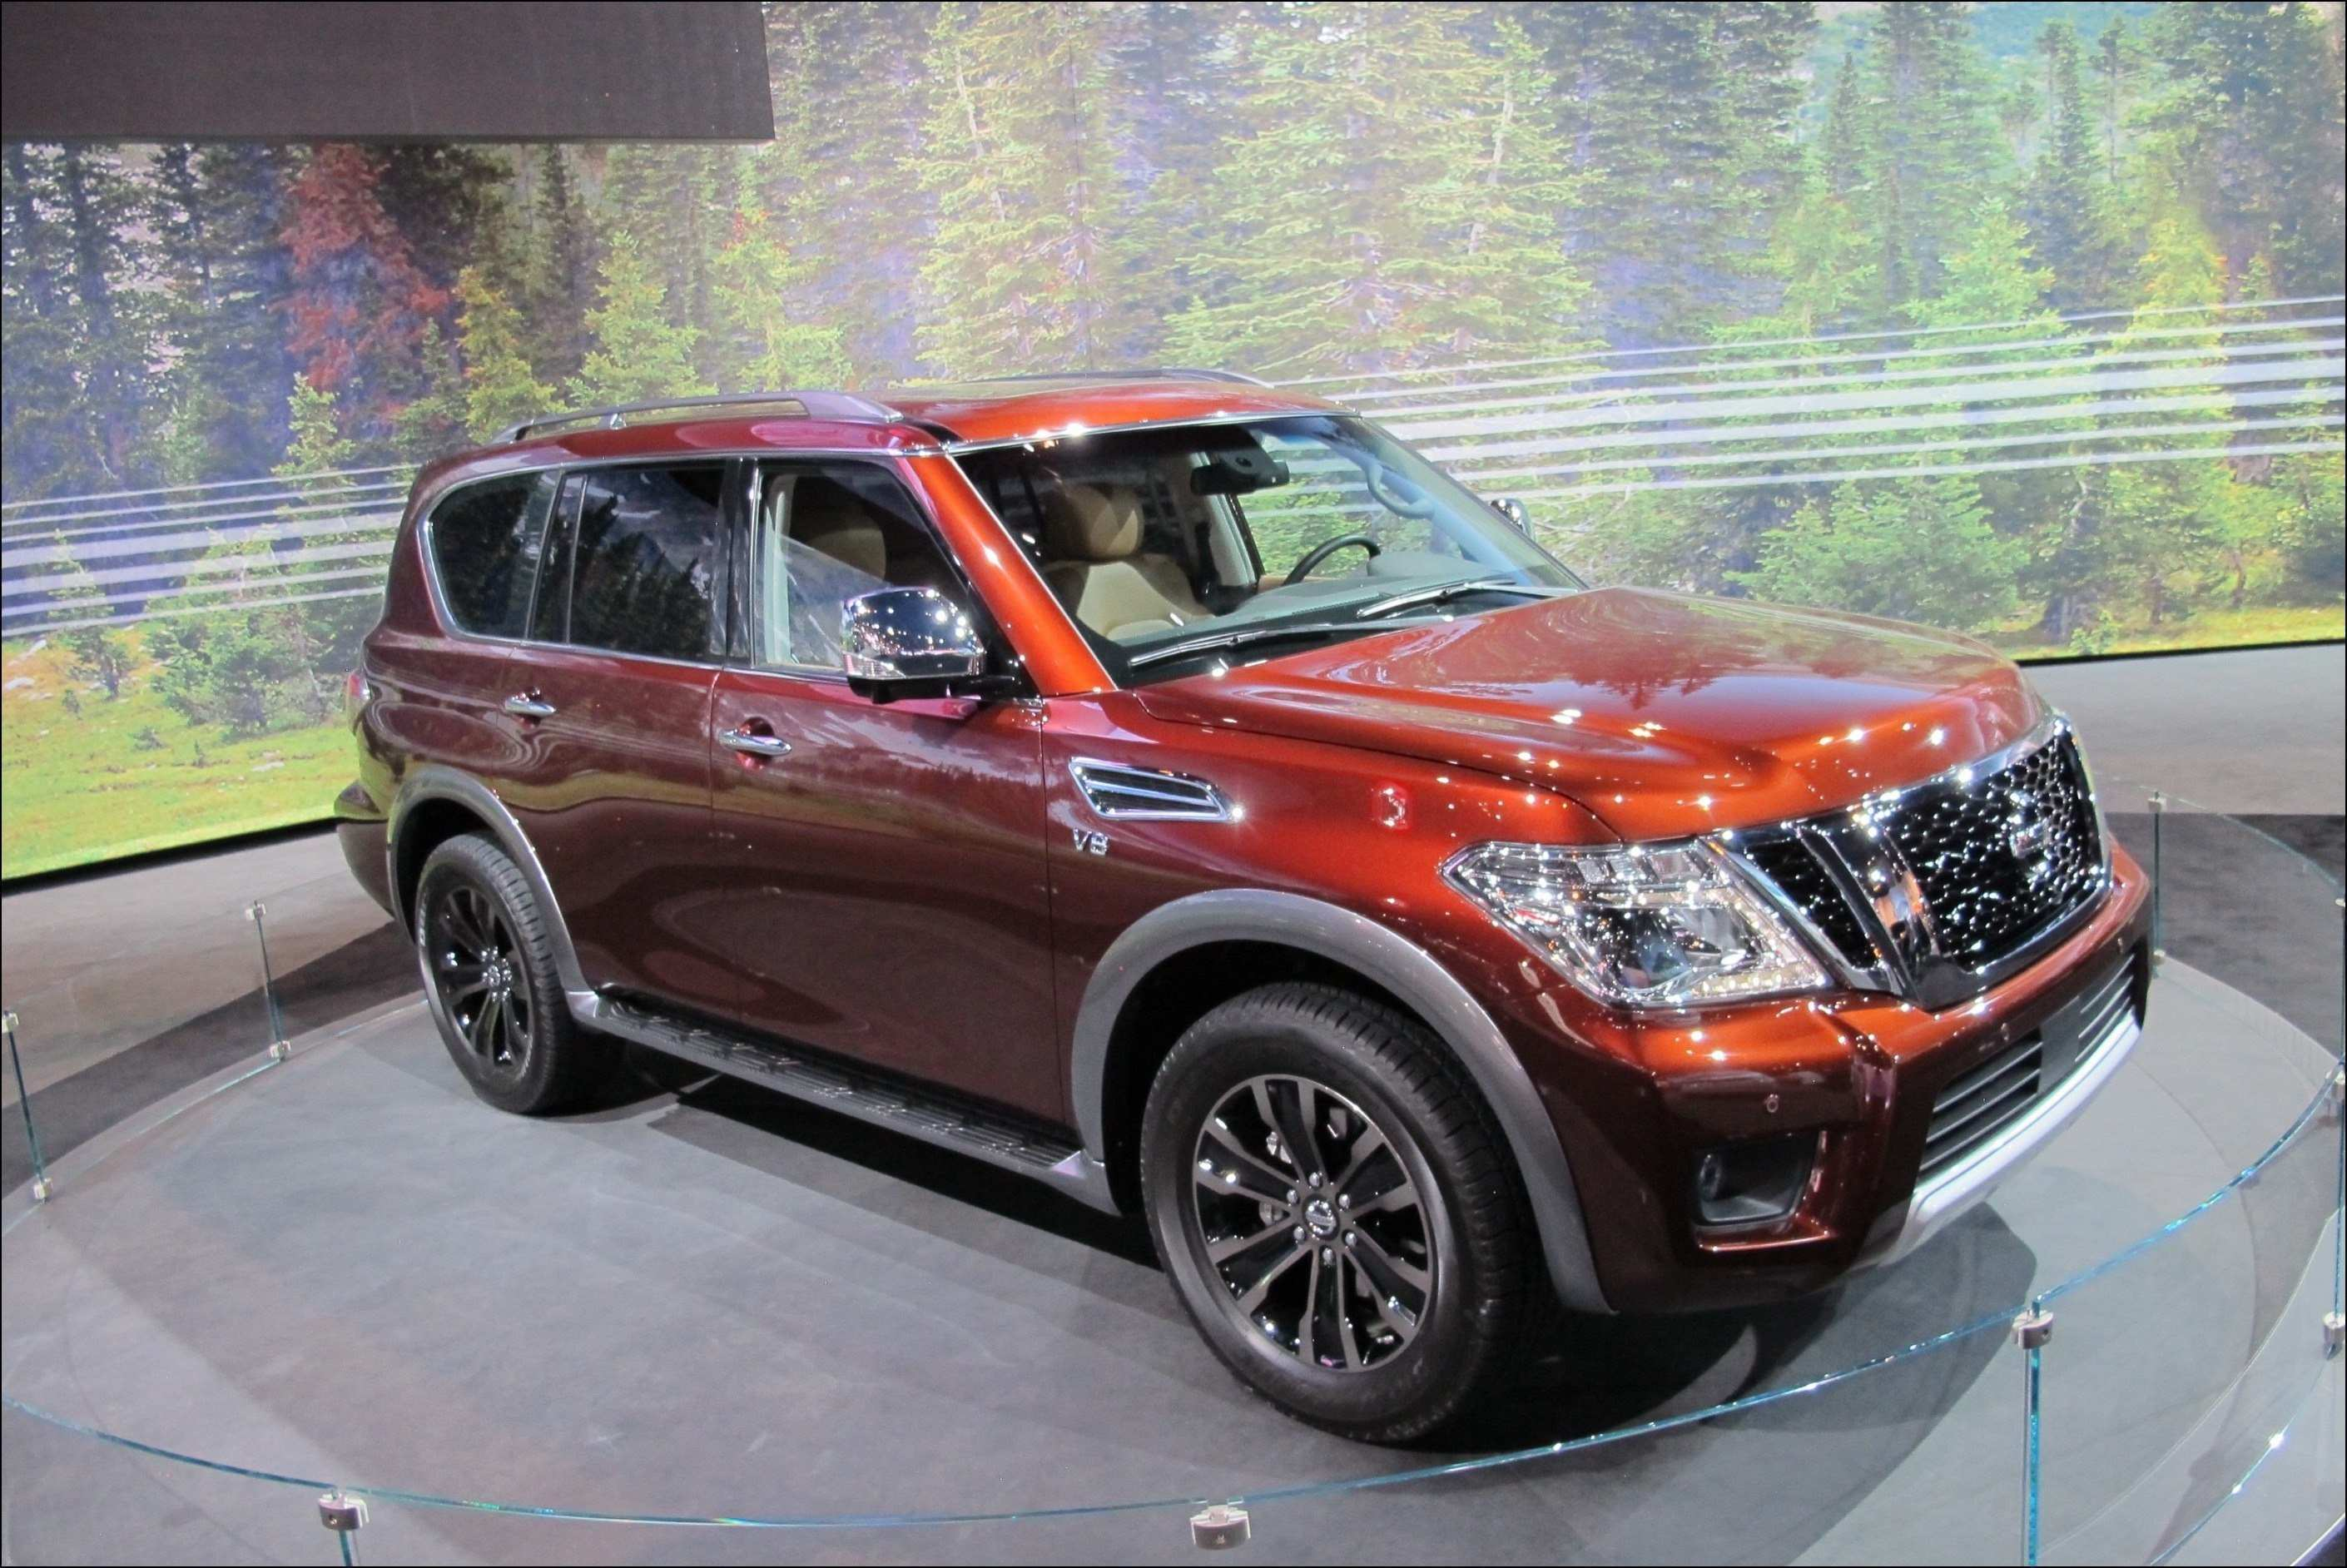 92 Gallery of New Nissan Patrol 2020 Speed Test with New Nissan Patrol 2020